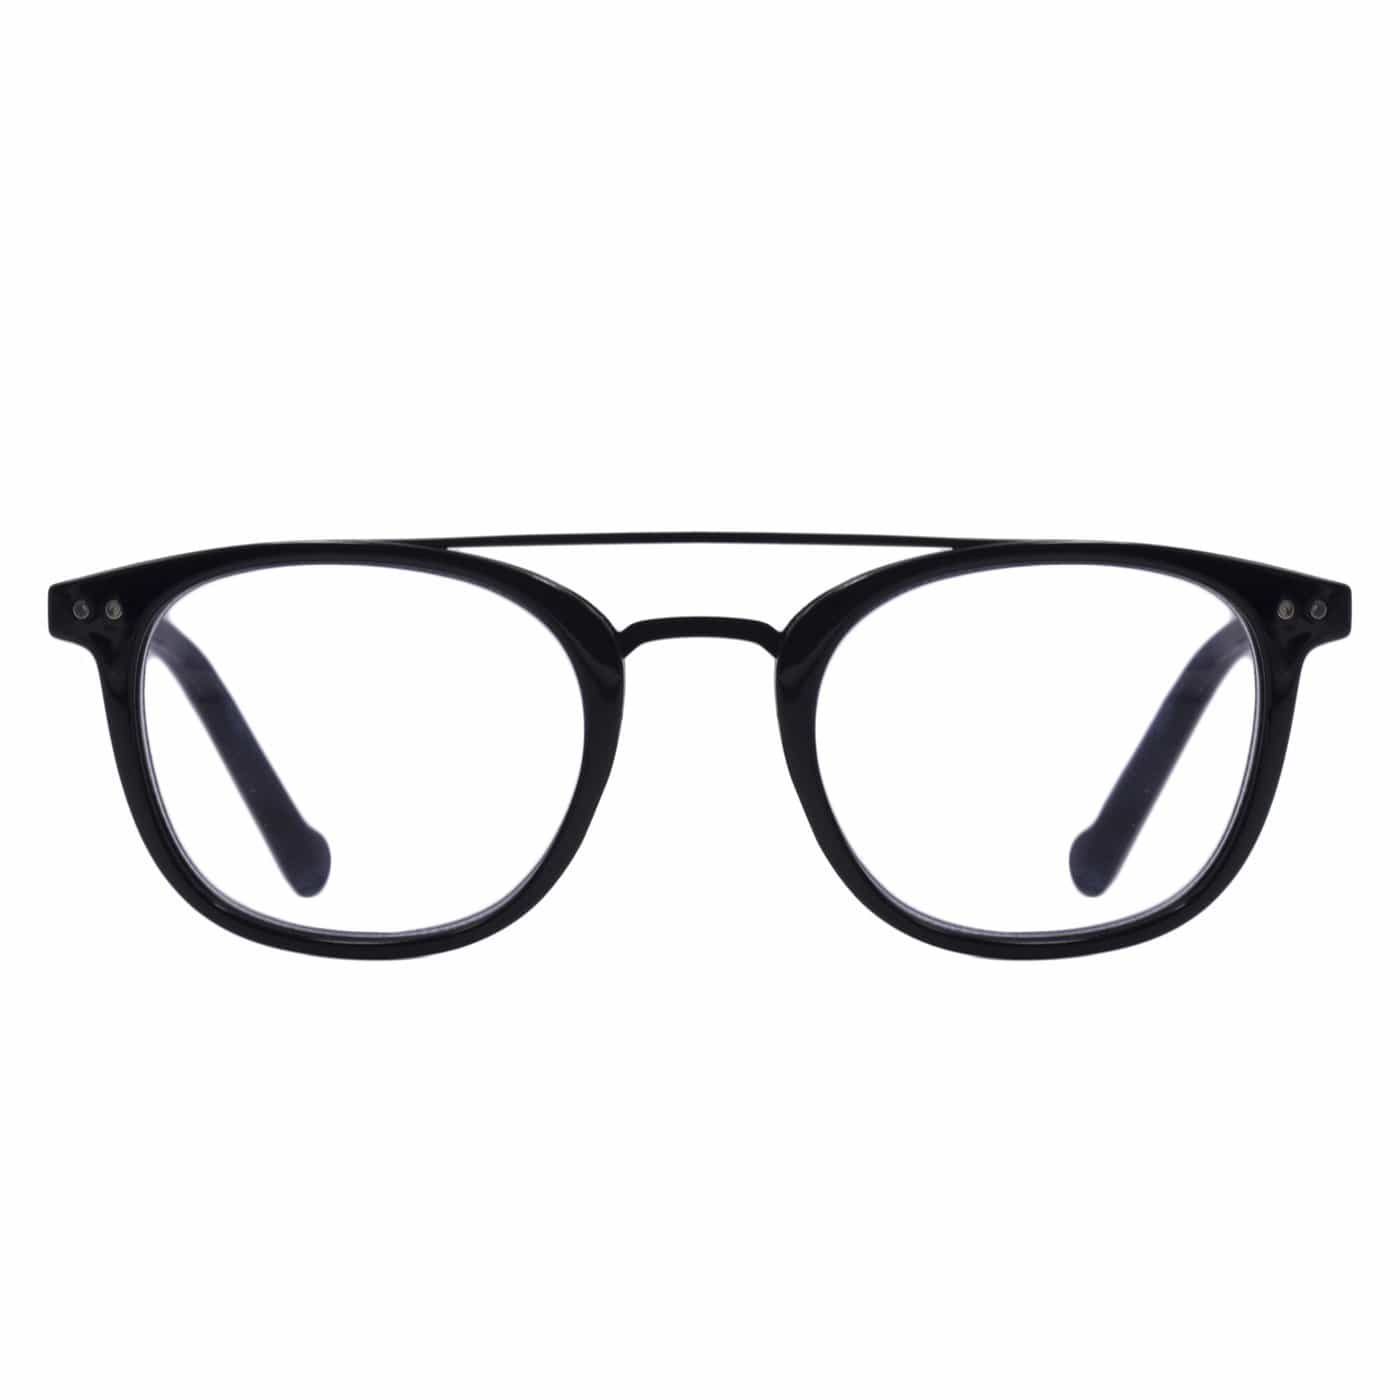 Milton Blue Light Blocking Reading Glasses - Black